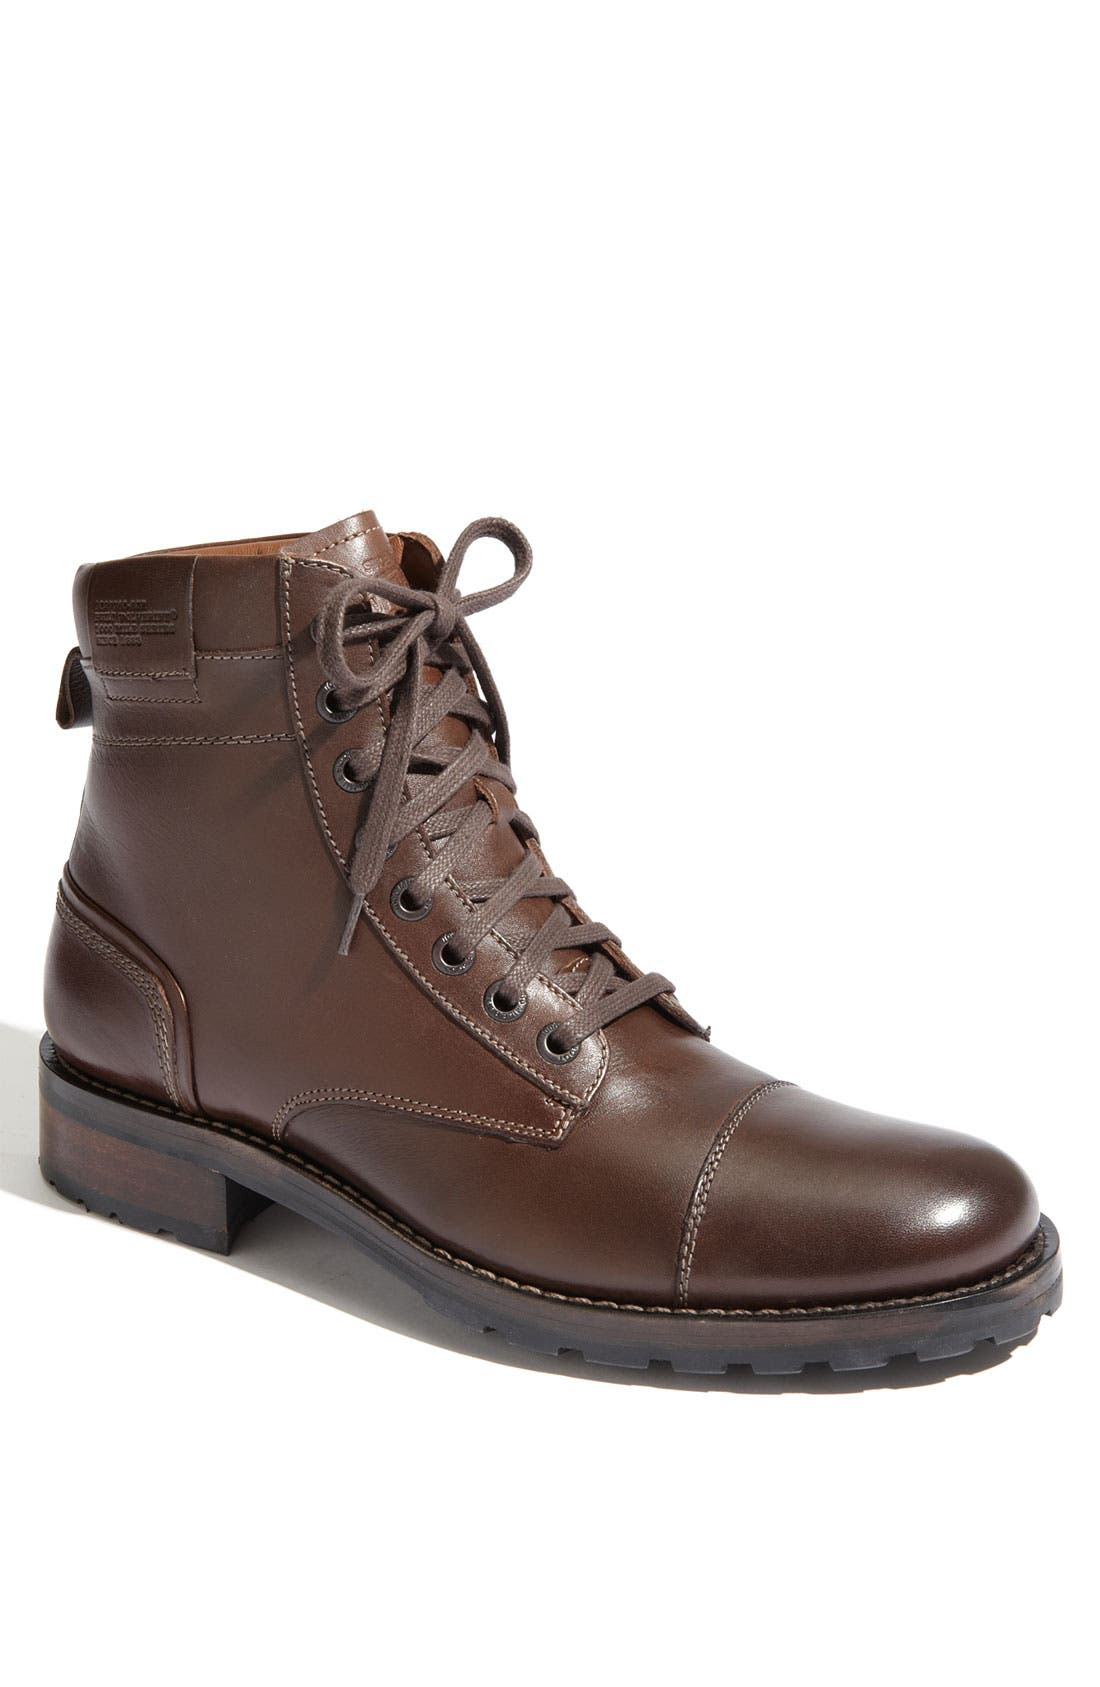 Alternate Image 1 Selected - Wolverine 'Montgomery' Lace-Up Boot